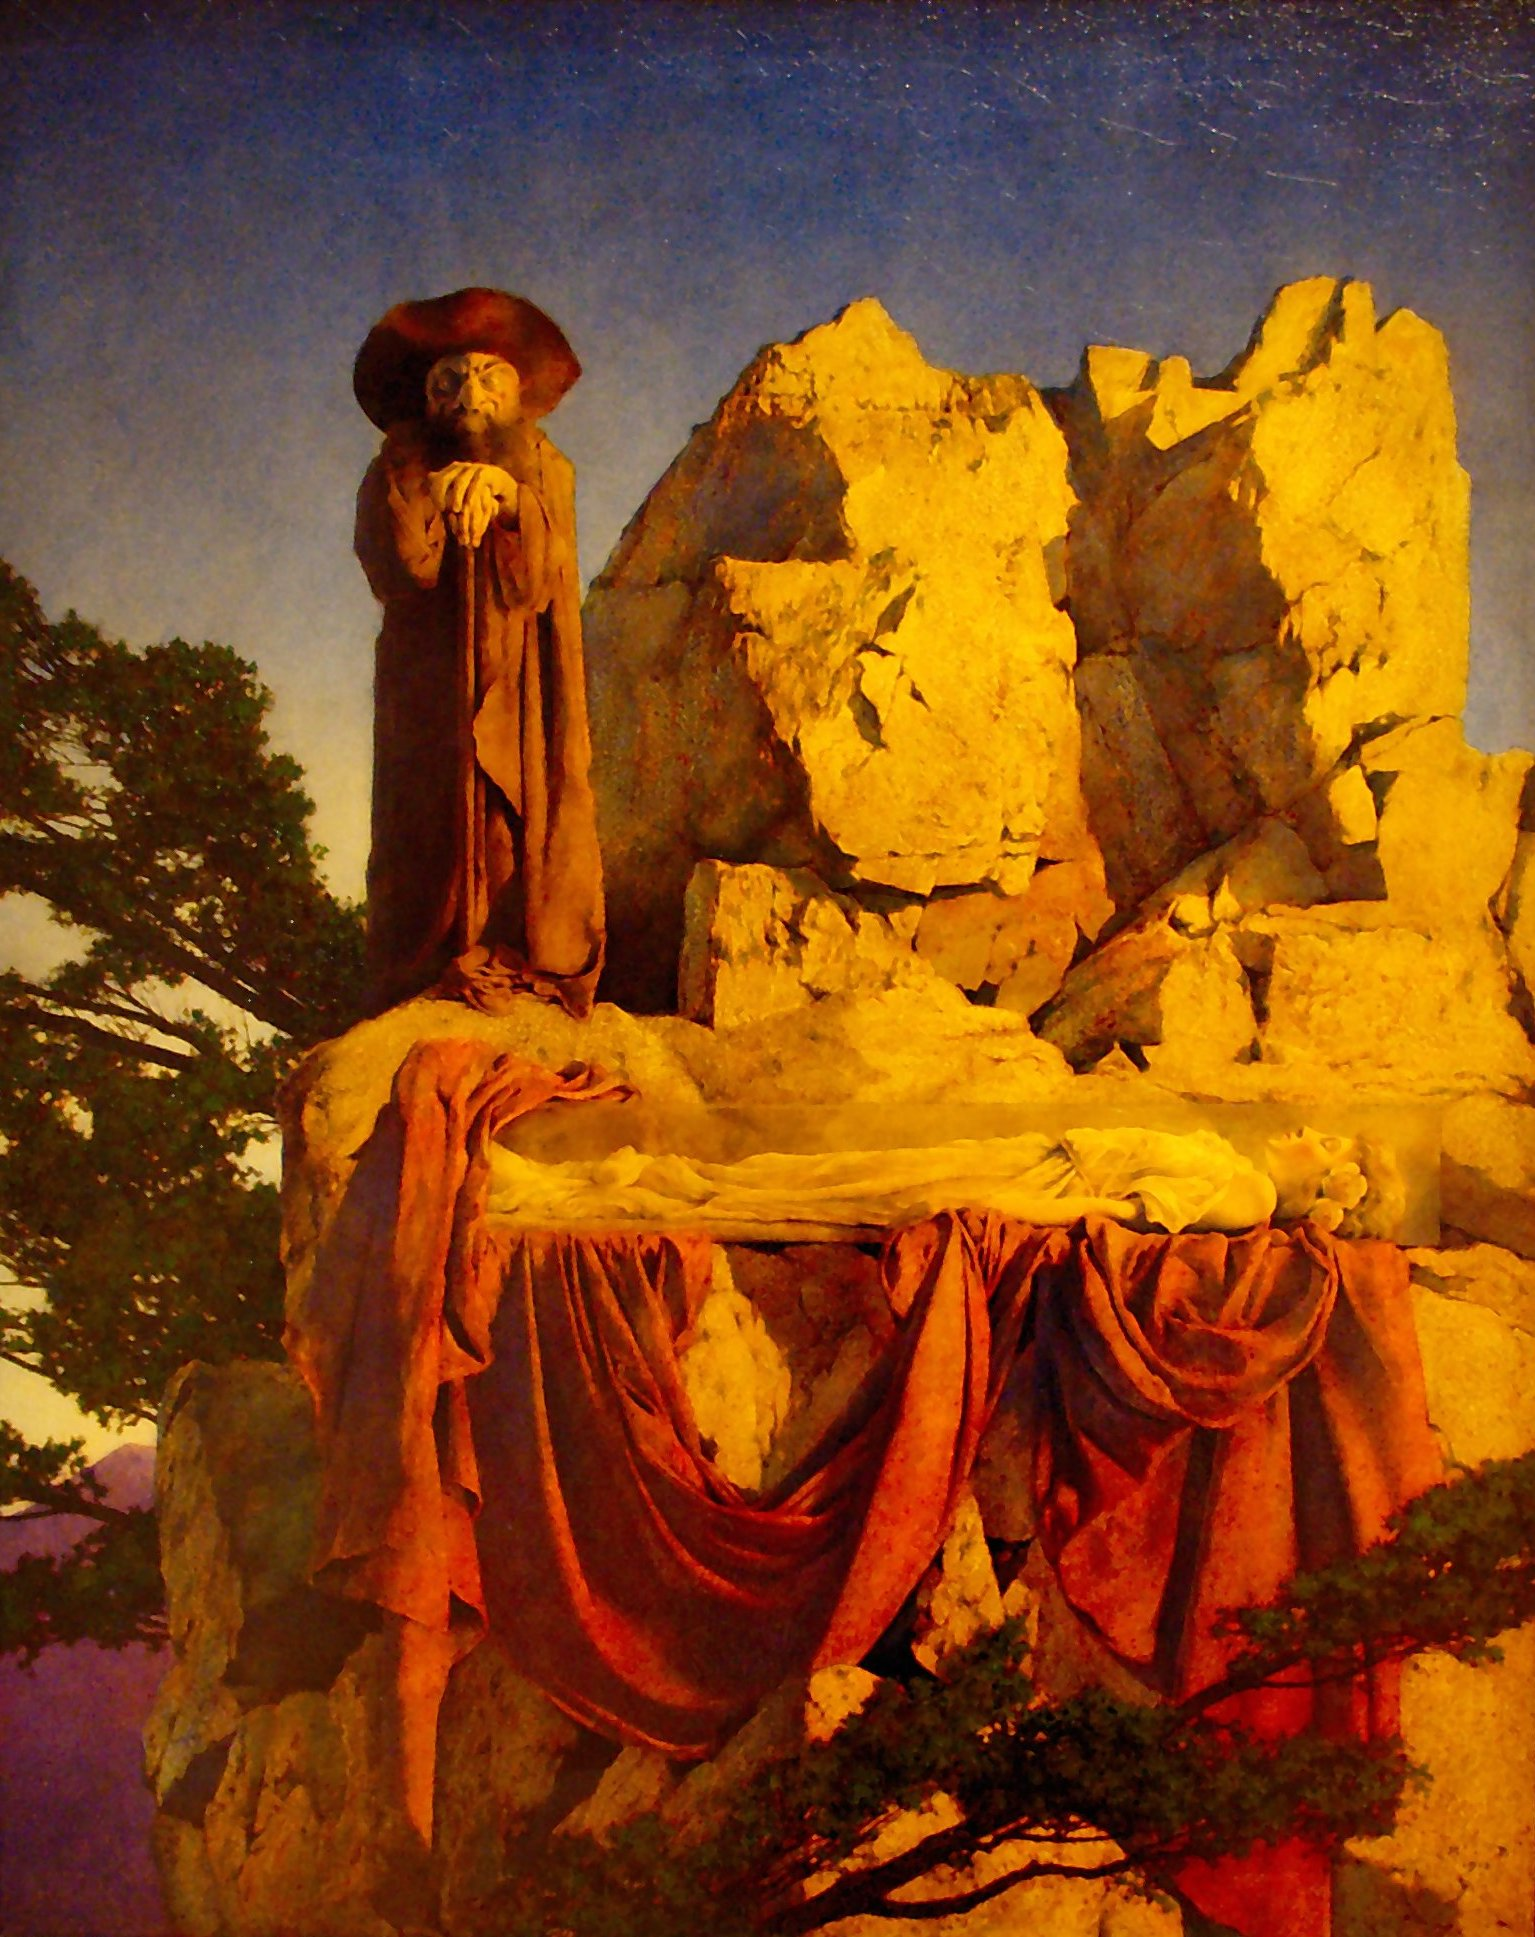 a biography of maxfield parrish Maxfield parrish biography maxfield parrish (july 25, 1870 - march 30, 1966) was an american painter and illustrator the dinky bird from poems of childhood .